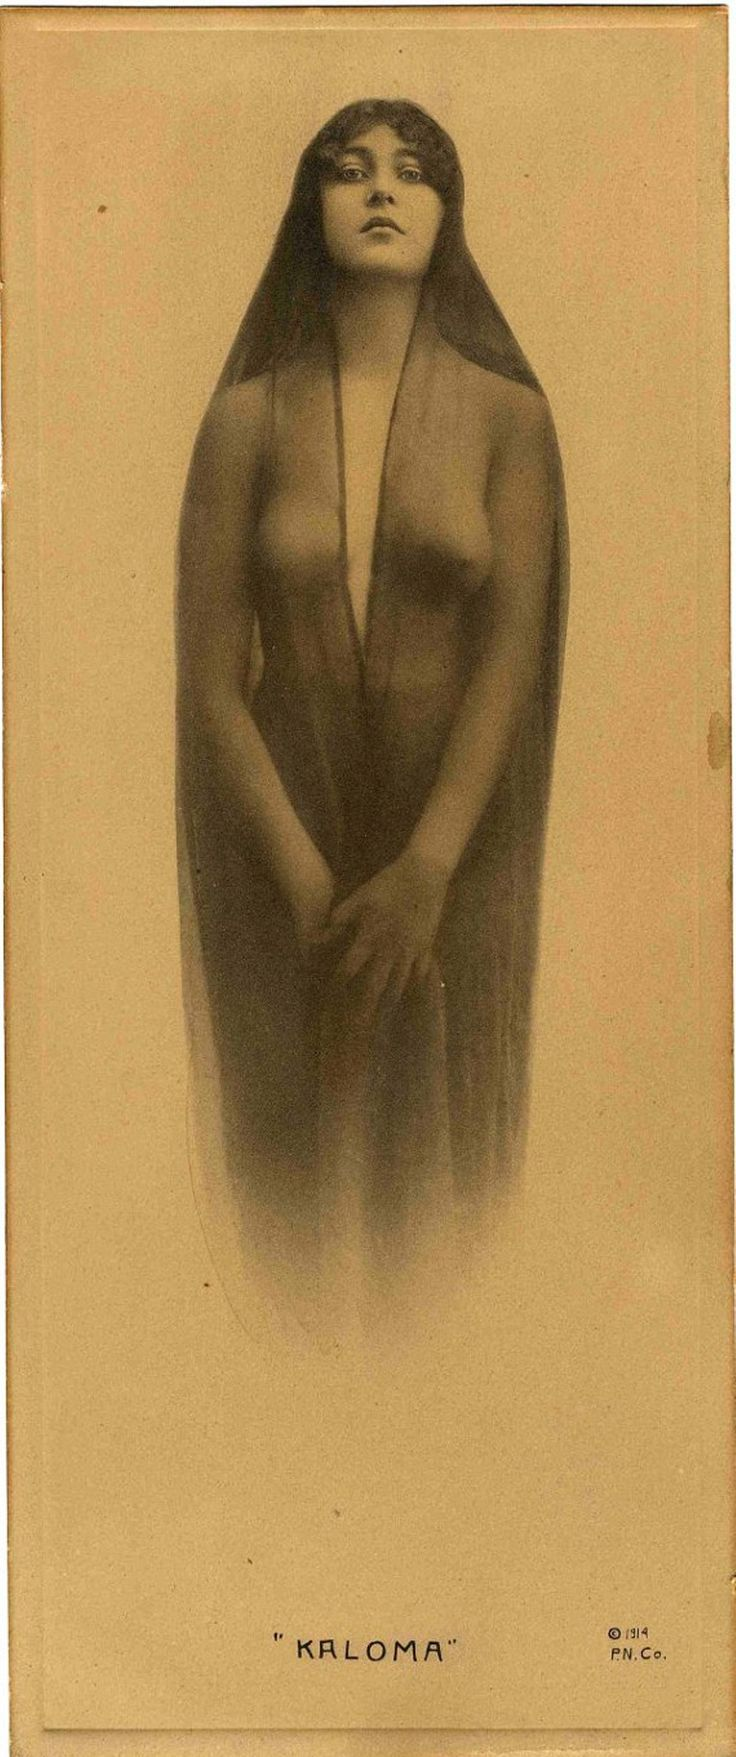 A vagabond and speculated prostitute of the Wild West, nothing Josephine Earp ever did was seemingly adventurous enough even for herself. She thrived off the change of environments andhad a certain mystique about her that followed her around like too muchperfume. But that's what drew people to her